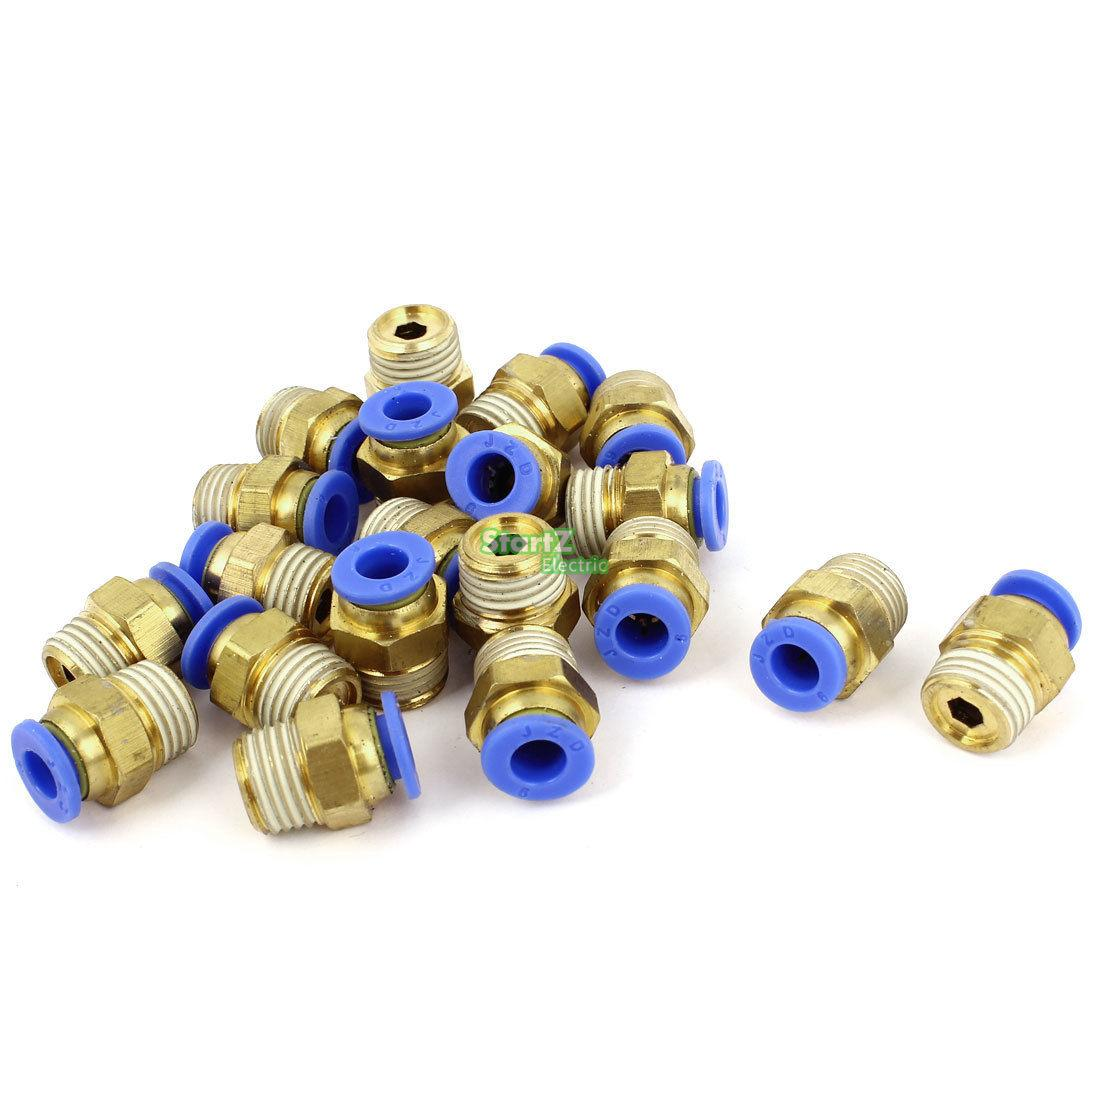 6mm Tube 1/4BSP Male Thread Quick Connector Pneumatic Air Fittings 20 Pcs pe 6 pneumatic fittings 6mm tee fitting push in quick joint connector pe6 10 pcs lot